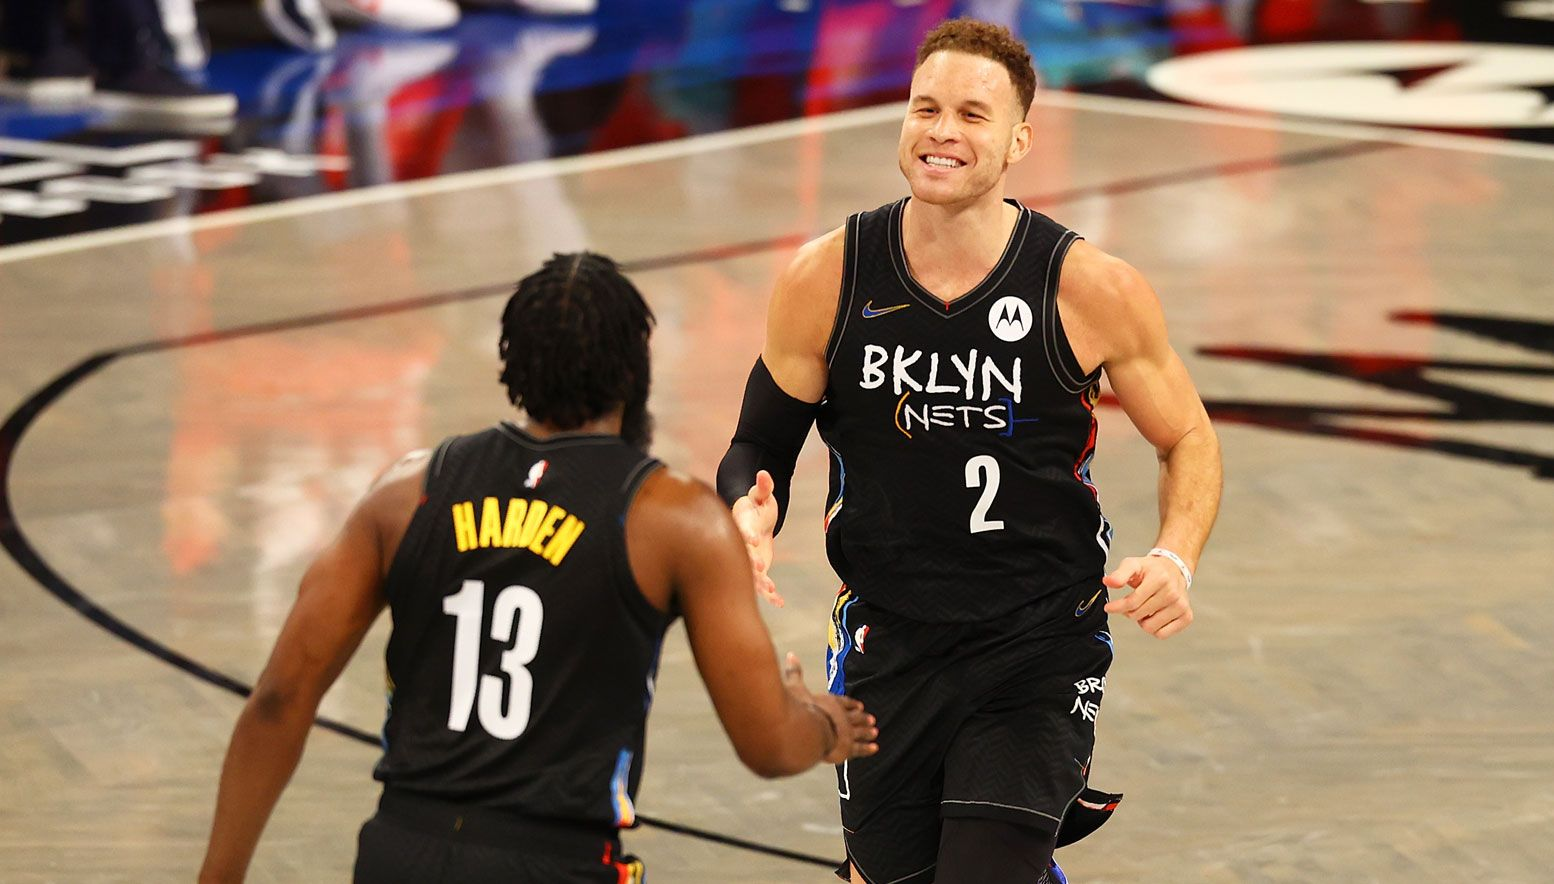 Blake Griffin smiling with James Harden